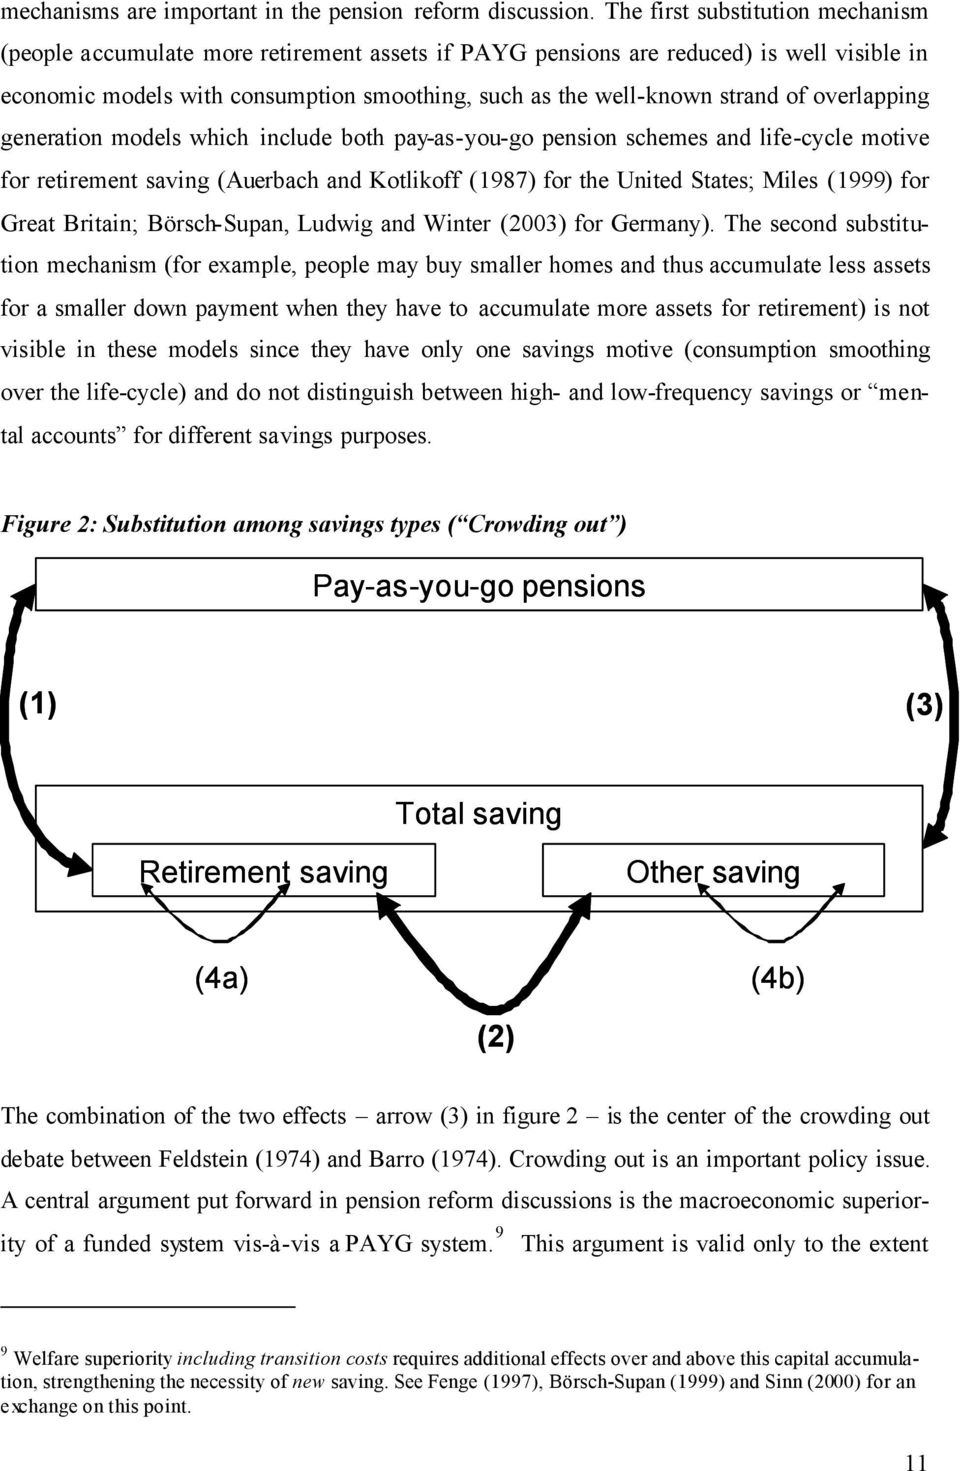 of overlapping generation models which include both pay-as-you-go pension schemes and life-cycle motive for retirement saving (Auerbach and Kotlikoff (1987) for the United States; Miles (1999) for